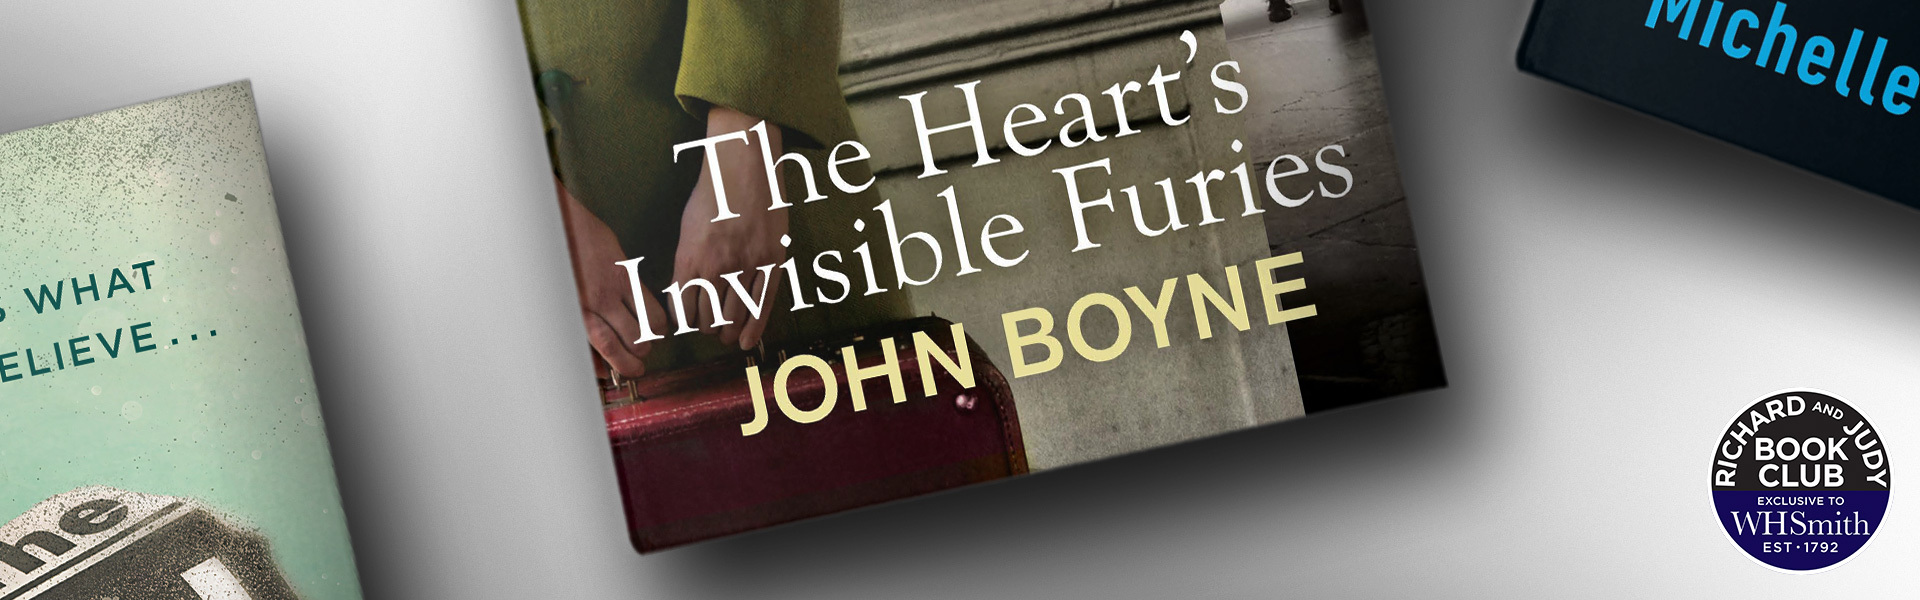 Richard and Judy Introduce The Heart's Invisible Furies by John Boyne